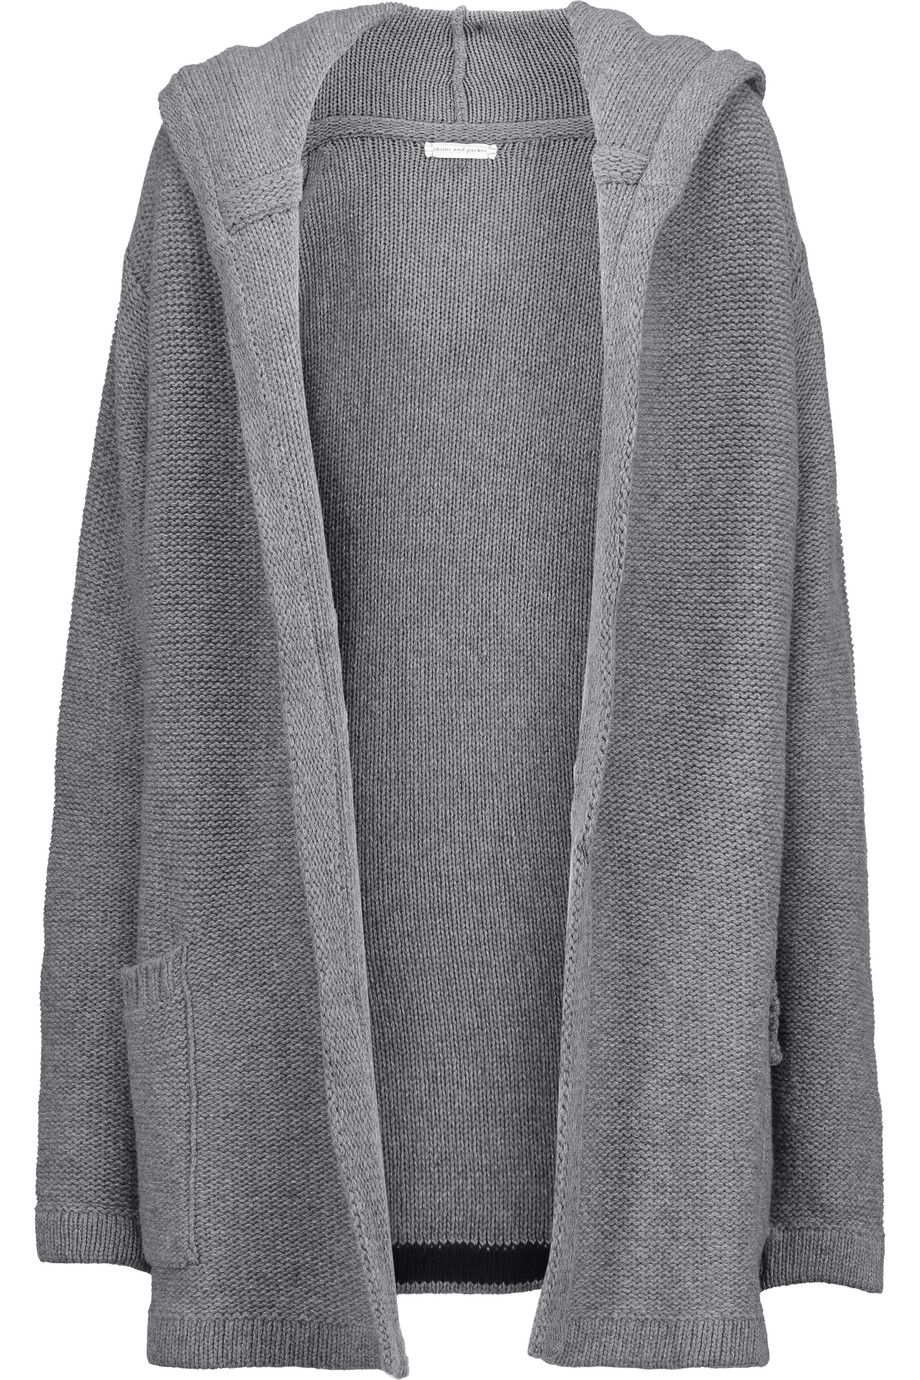 CHINTI AND PARKER Merino Wool And Cashmere-Blend Hooded Cardigan ...